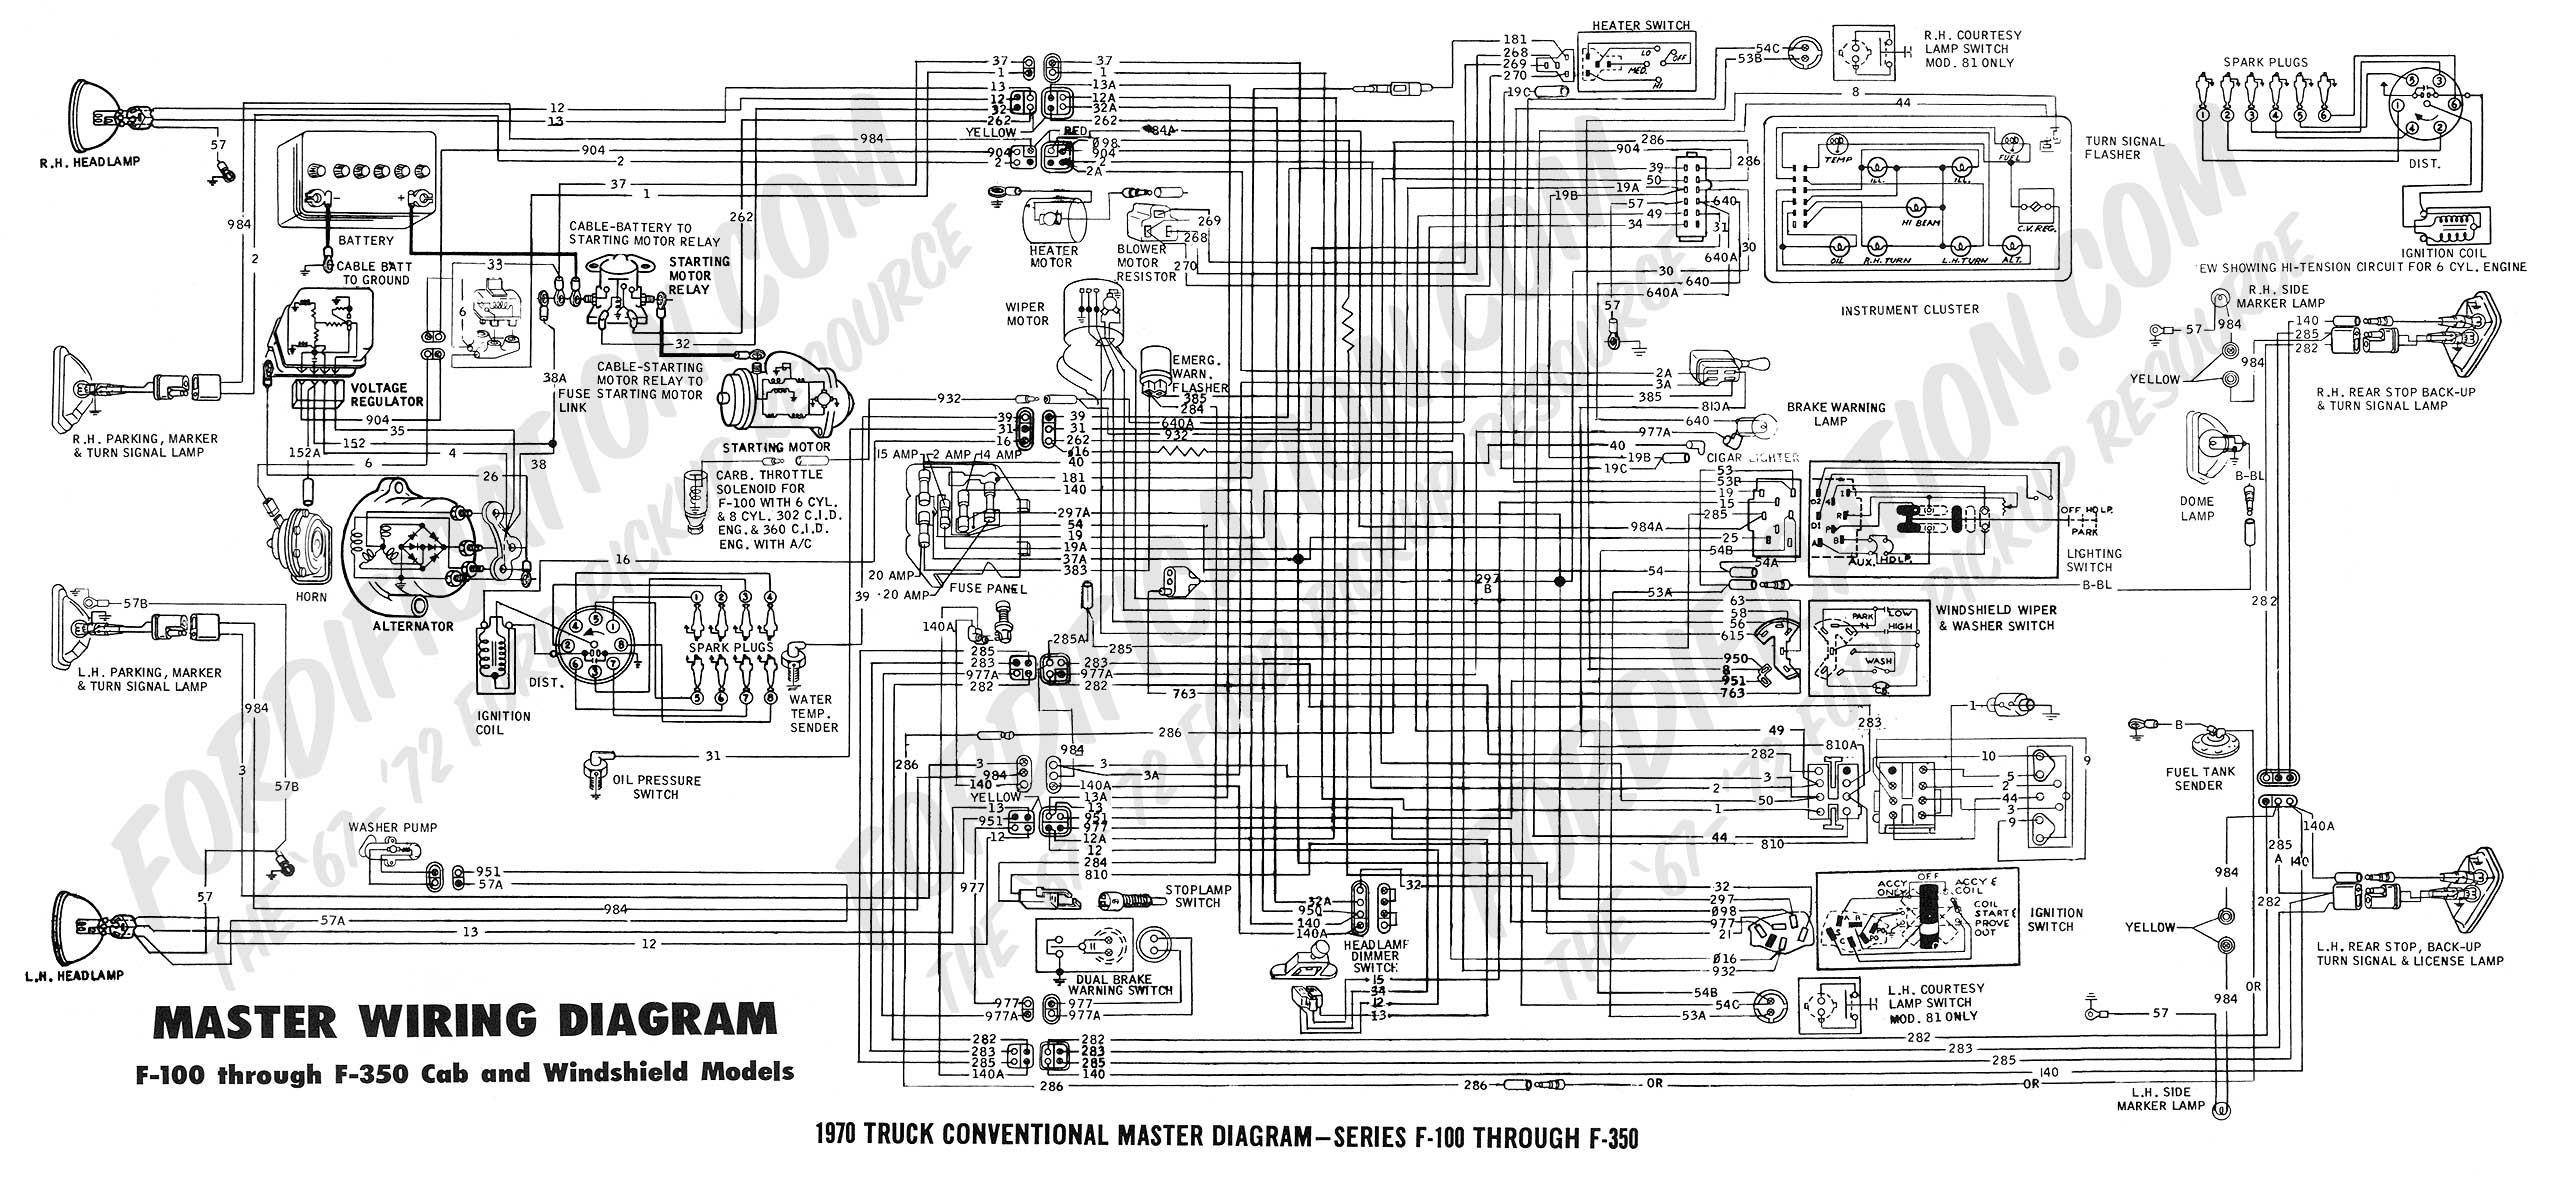 wiring diagram 70_master ford truck technical drawings and schematics section h wiring Ford Electrical Wiring Diagrams at virtualis.co